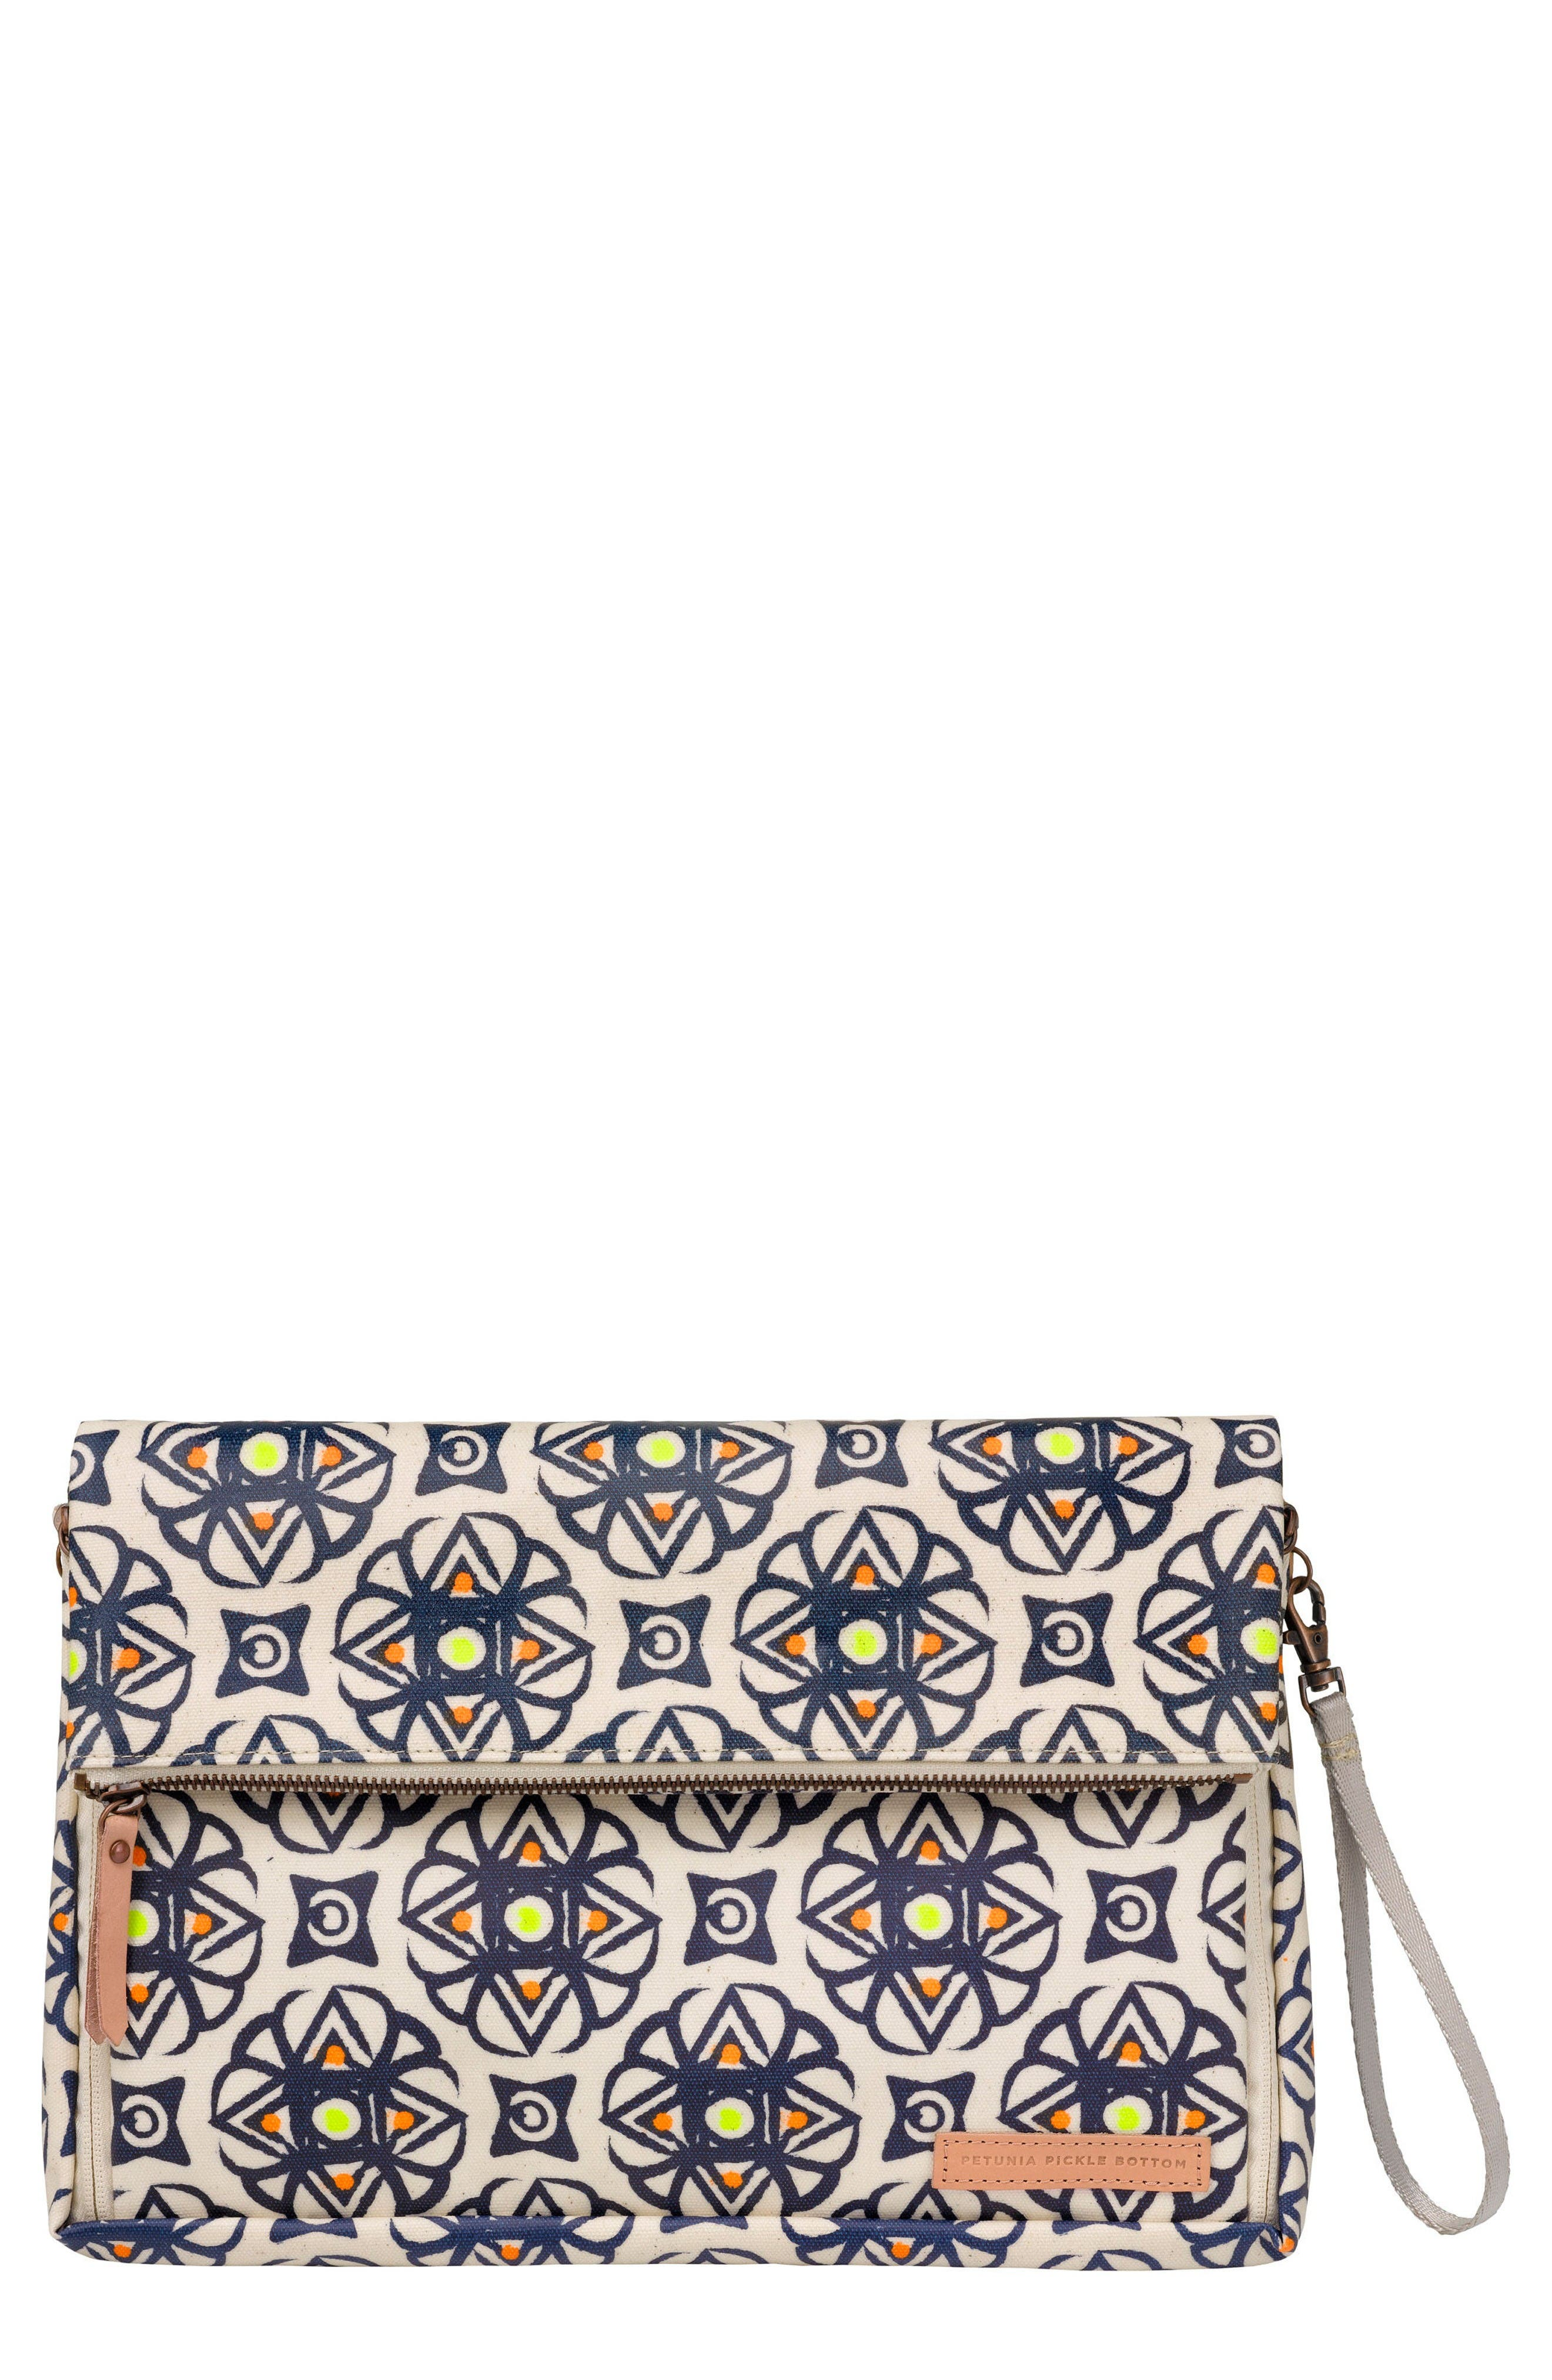 Alternate Image 1 Selected - Petunia Pickle Bottom Convertible Clutch